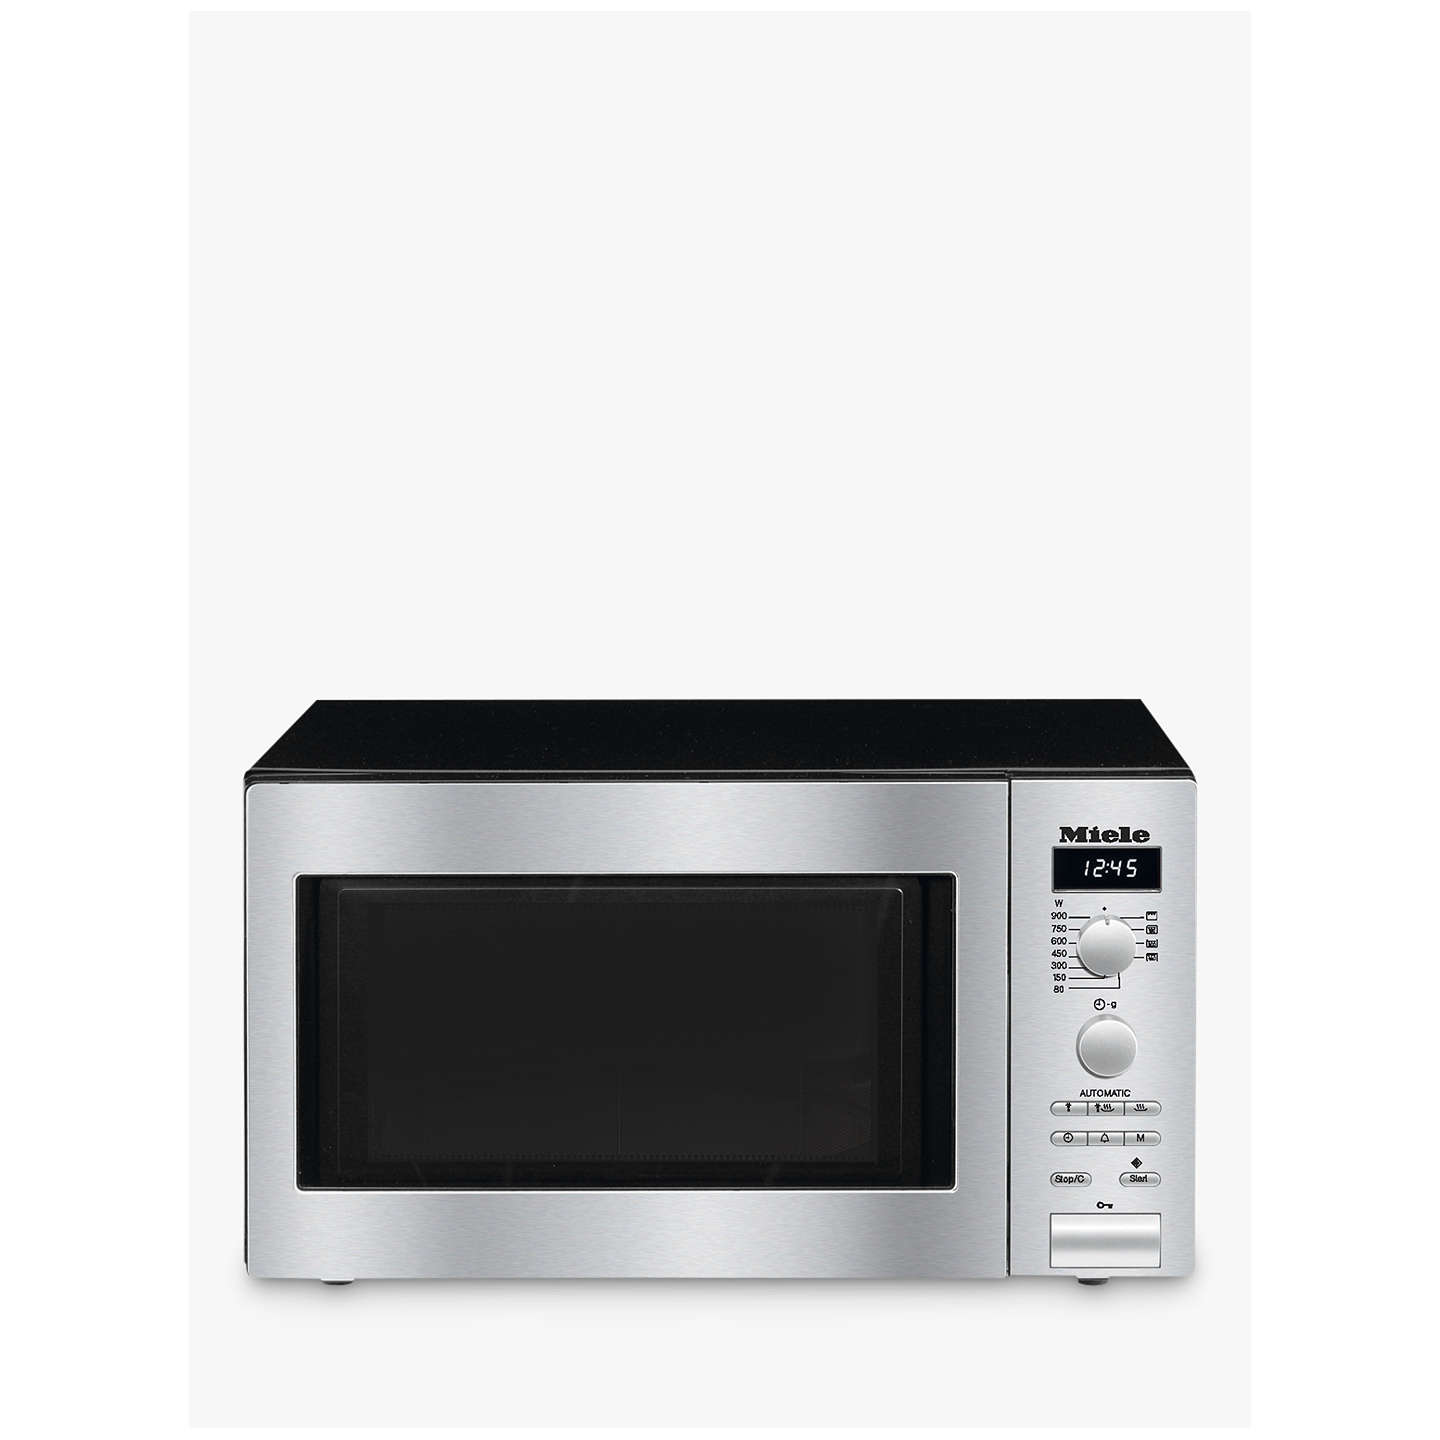 Miele M6012 Contourline Microwave Oven With Grill Stainless Steel Online At Johnlewis